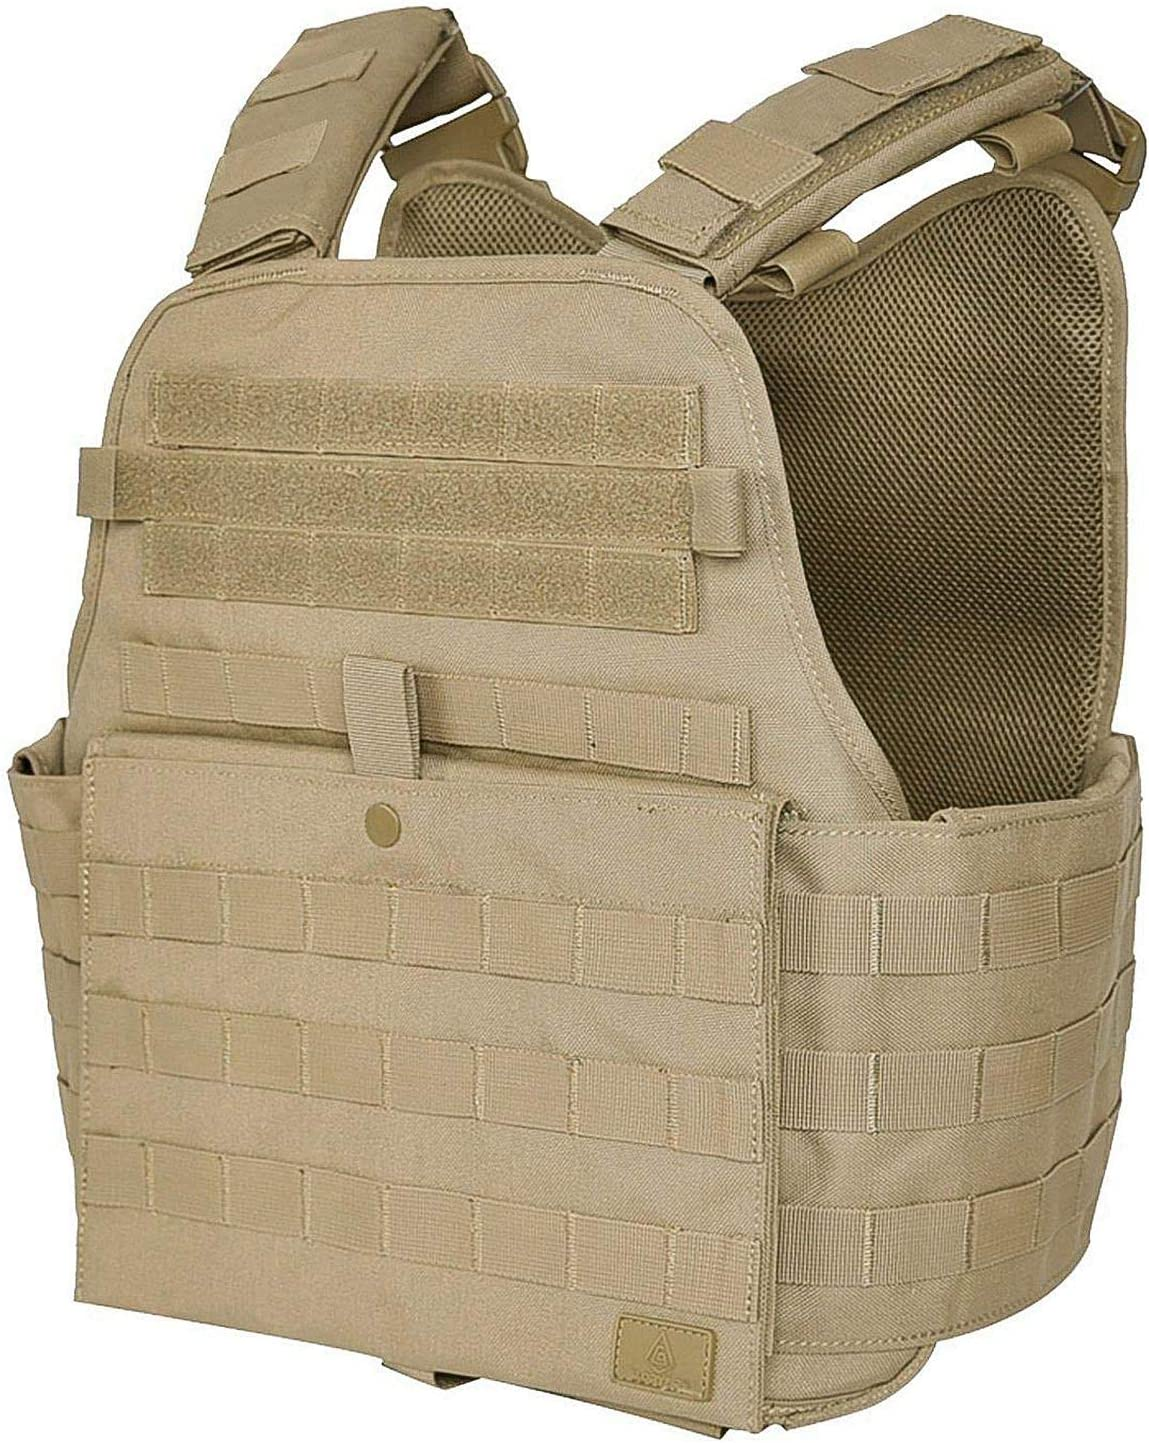 This is an image of a tactical vest in brown shade, with front map pocket in snap closure, and hook and loop feature.